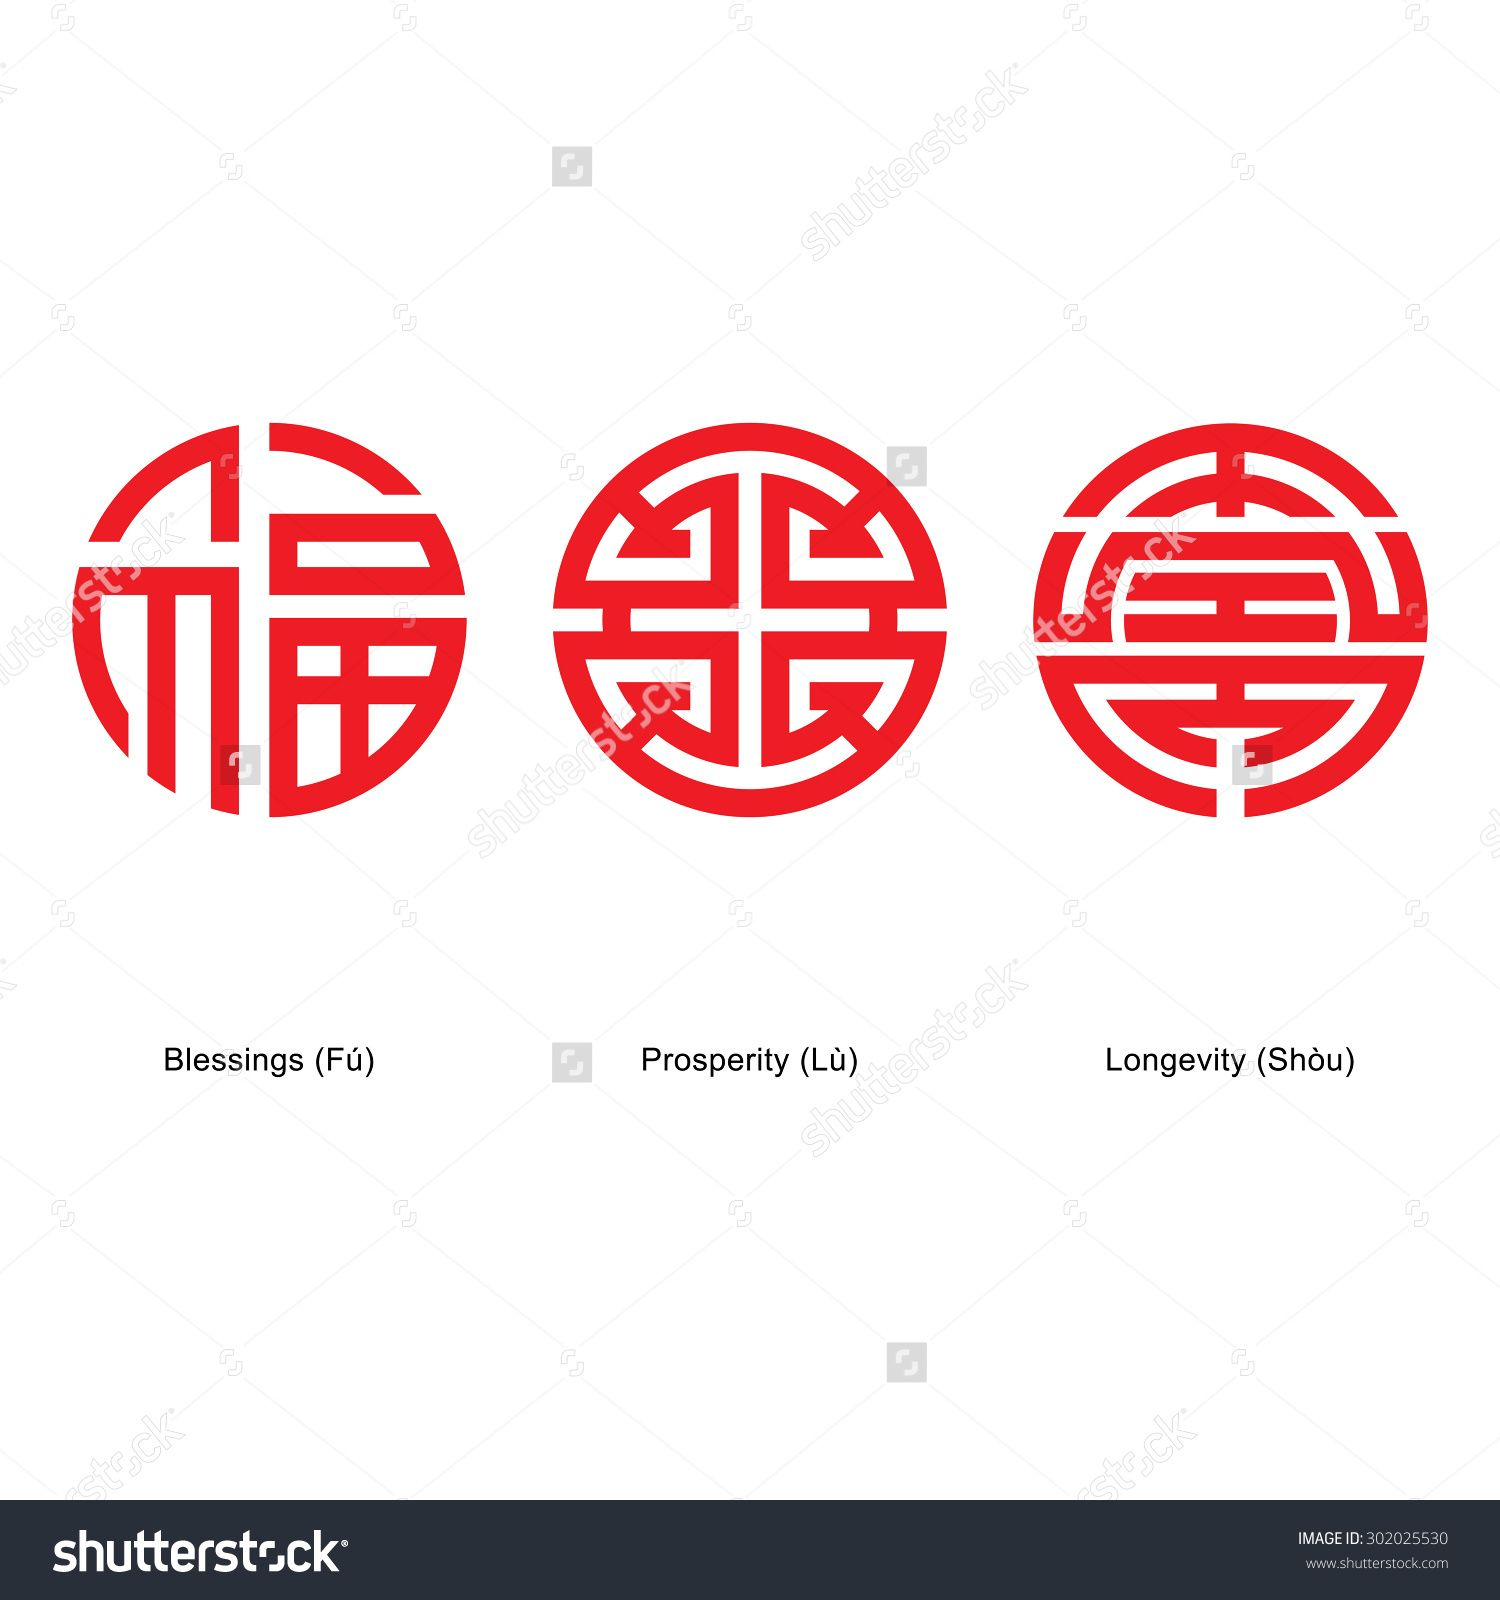 Chinese lucky symbols blessings prosperity and longevity chinese lucky symbols blessings prosperity and longevity description from shutterstock buycottarizona